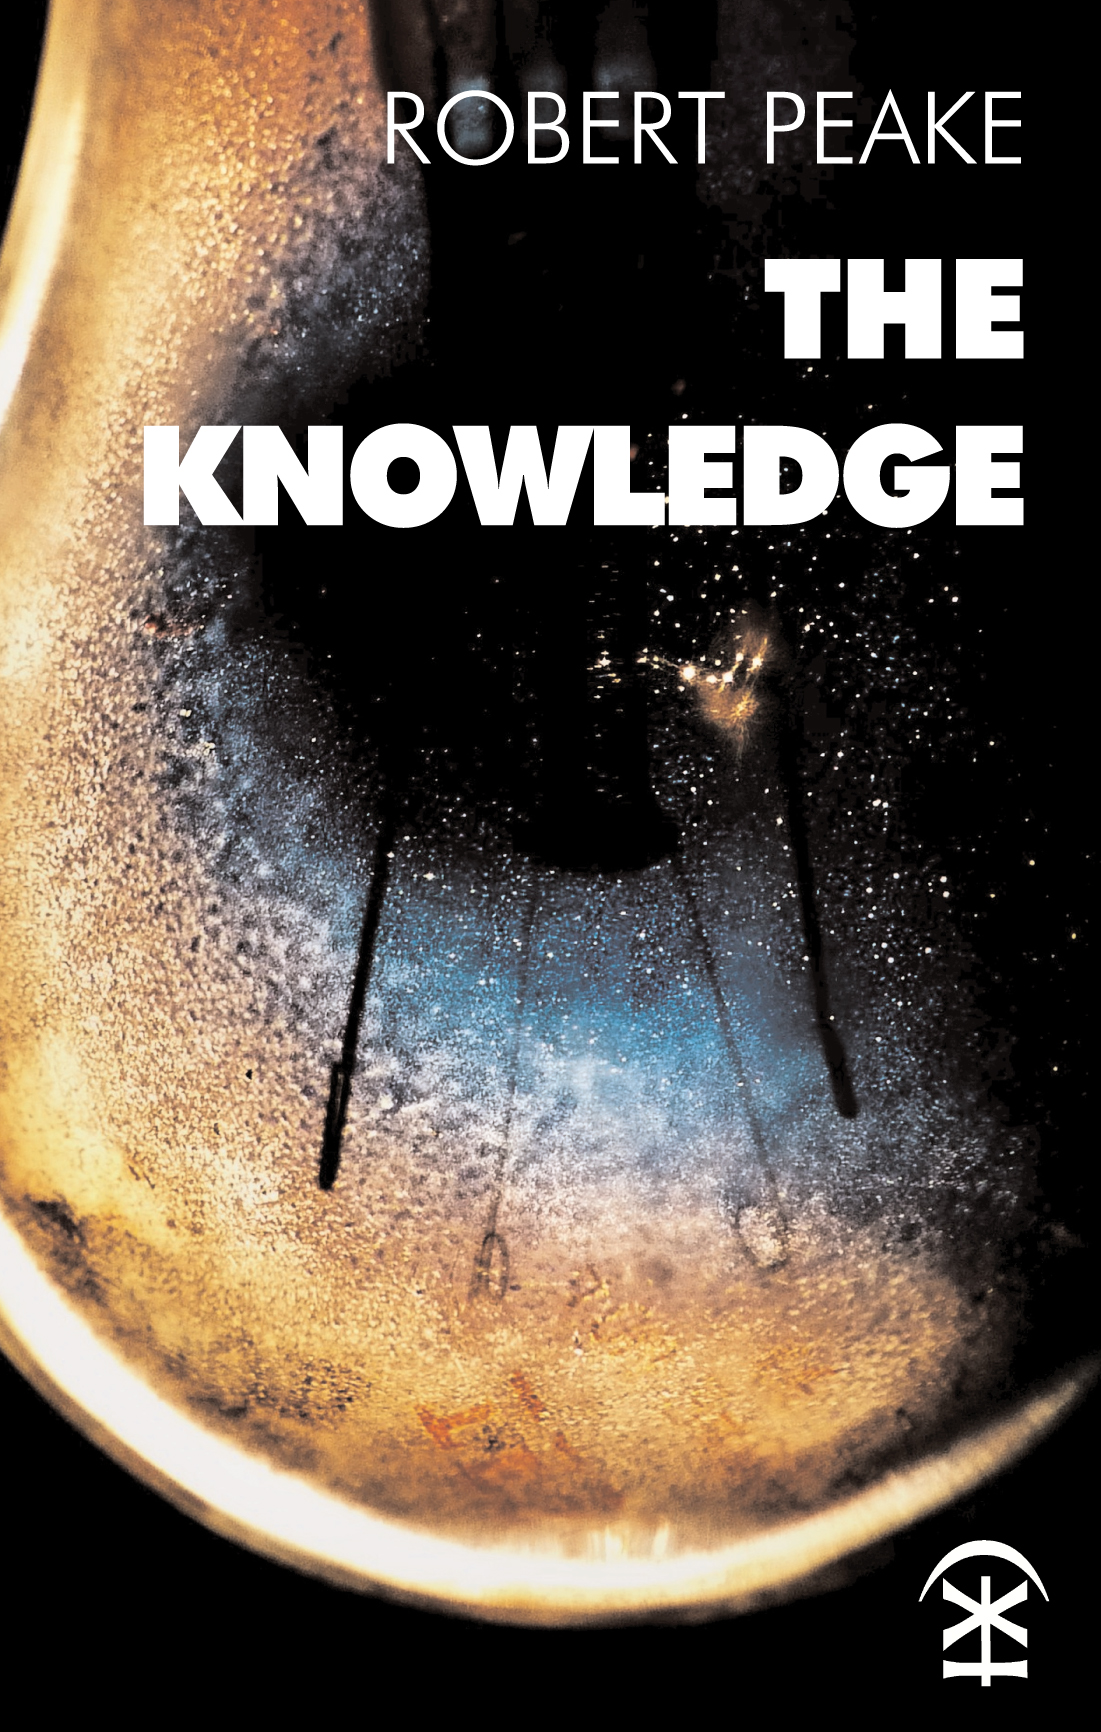 The Knowledge by Robert Peake